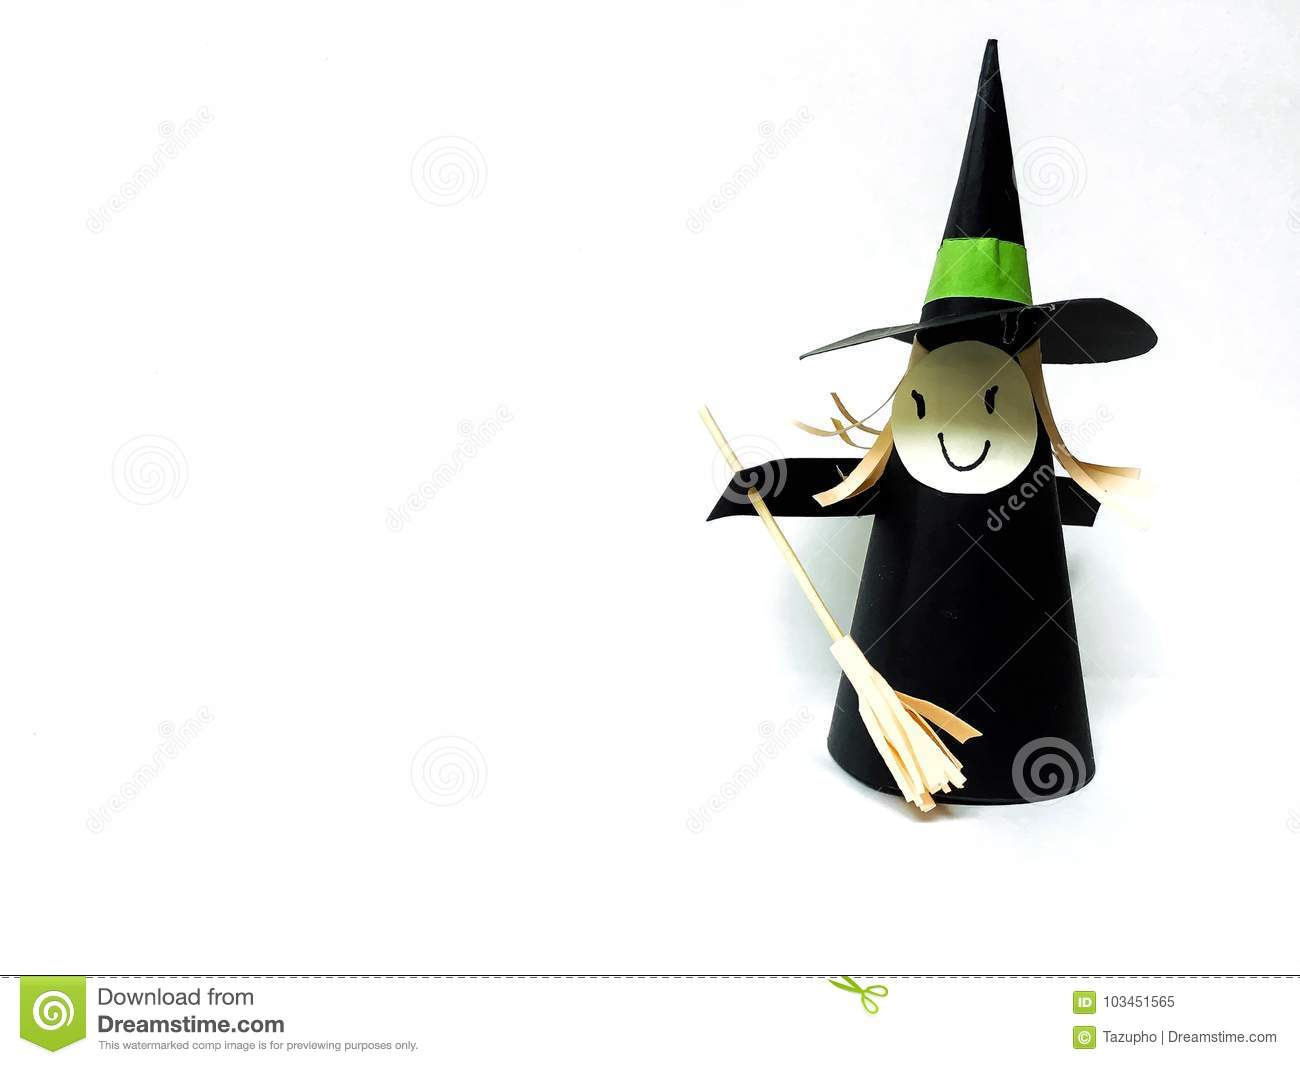 witch paper craft white background halloween diy halloween paper craft party ornament favor ideas witch paper craft